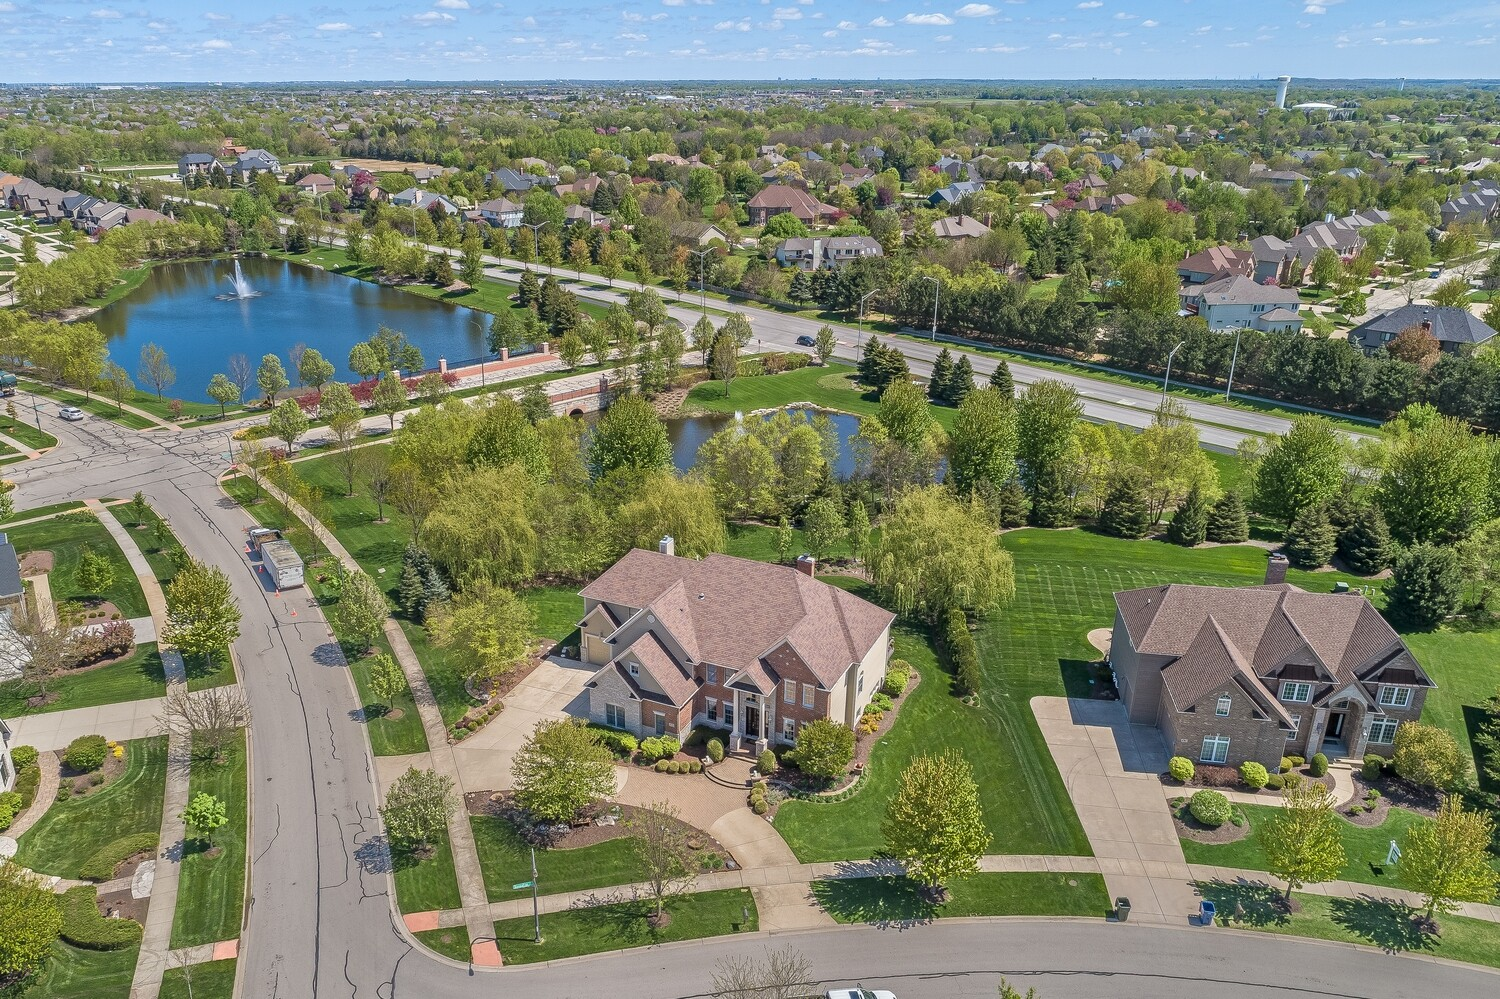 Aerial Photography - Yorkville area - 5 images